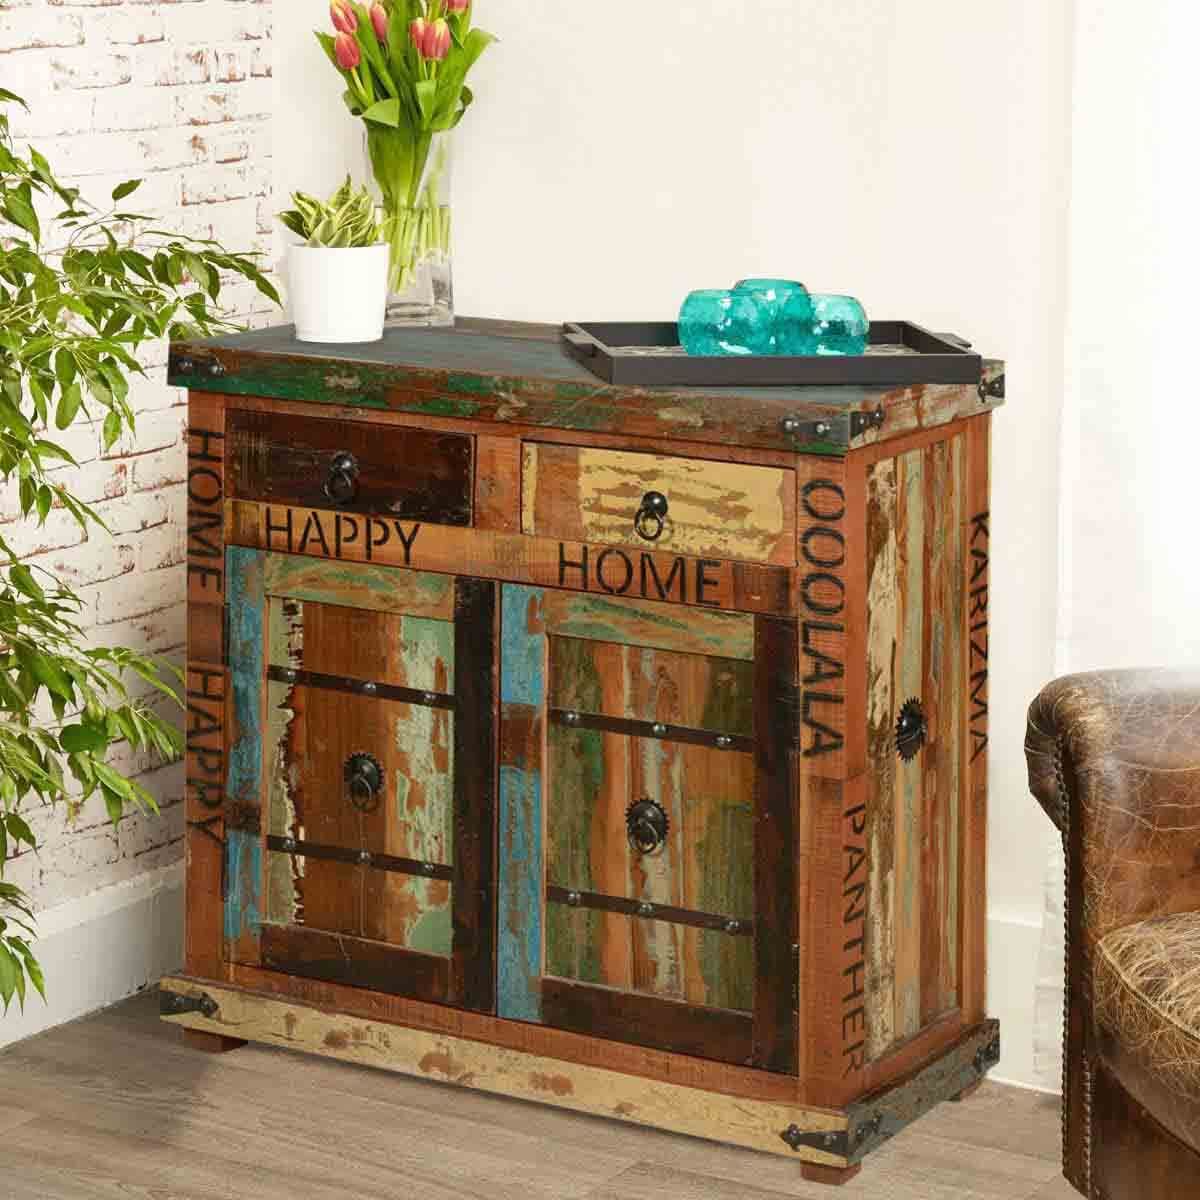 & Happy Home Rustic Reclaimed Wood 2 Drawer Storage Cabinet